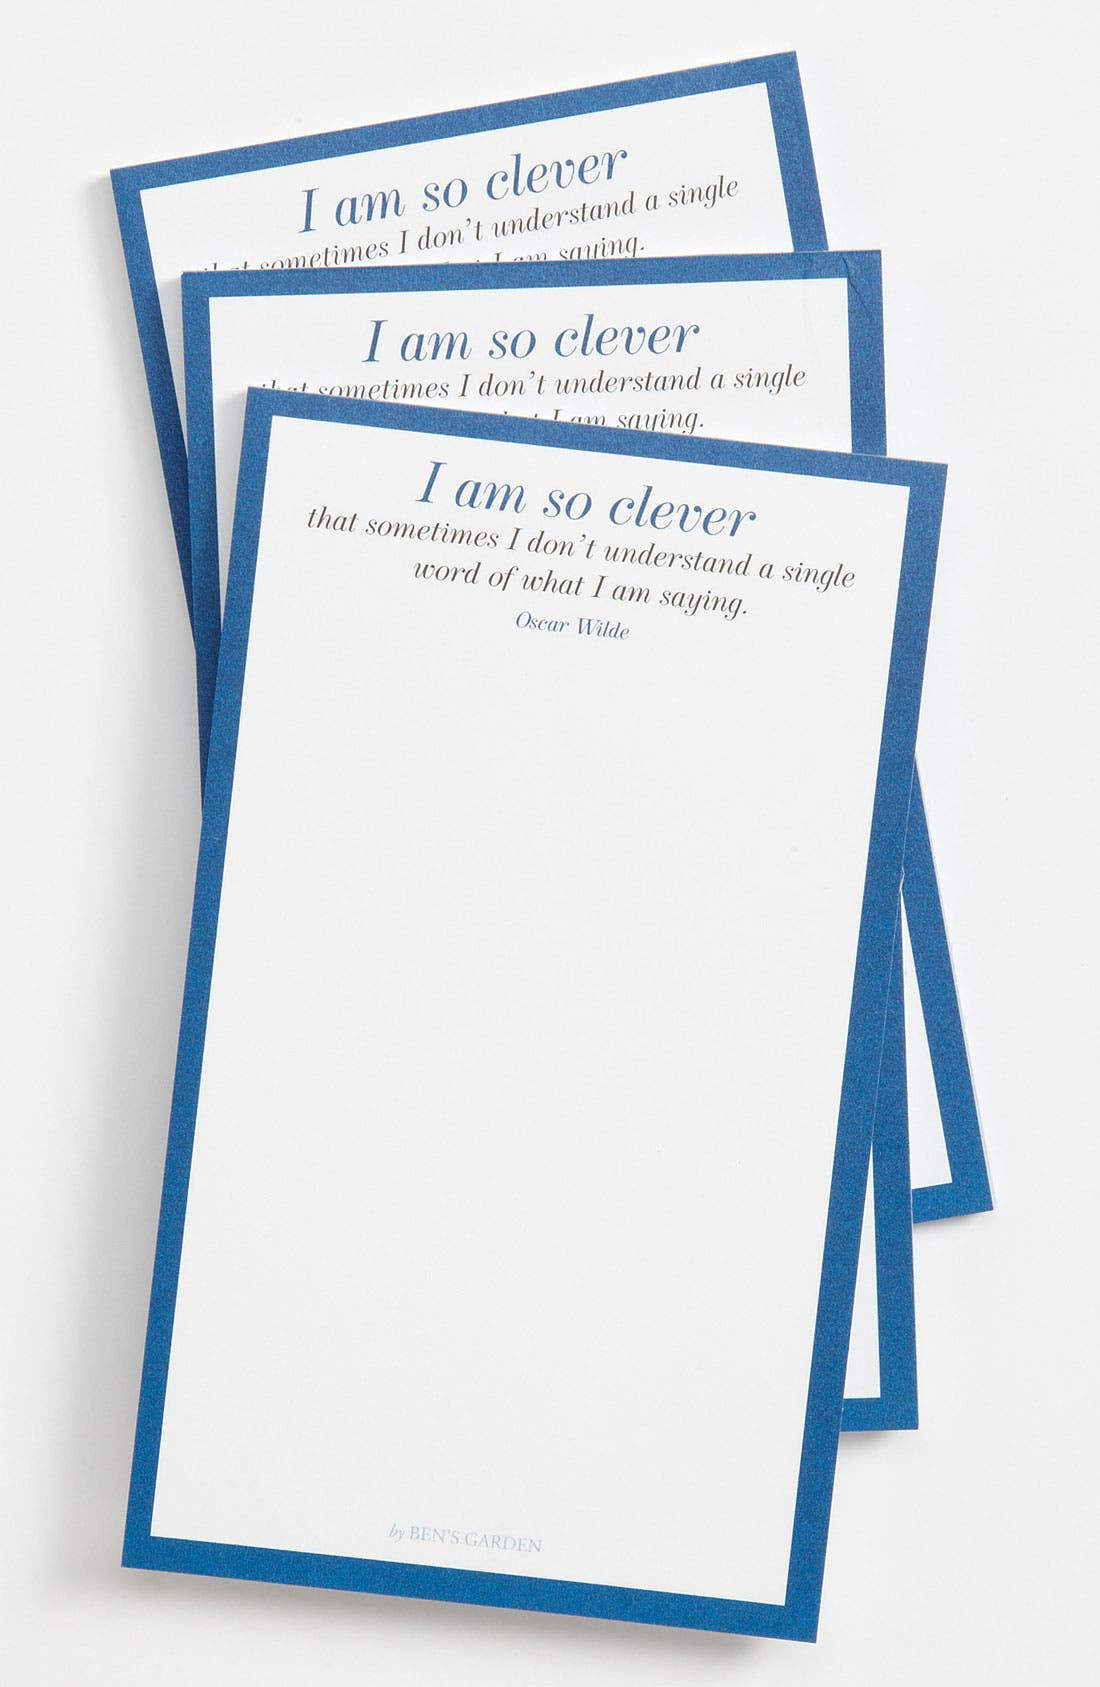 Alternate Image 1 Selected - Ben's Garden 'I Am So Clever' Notepads (3-Pack)